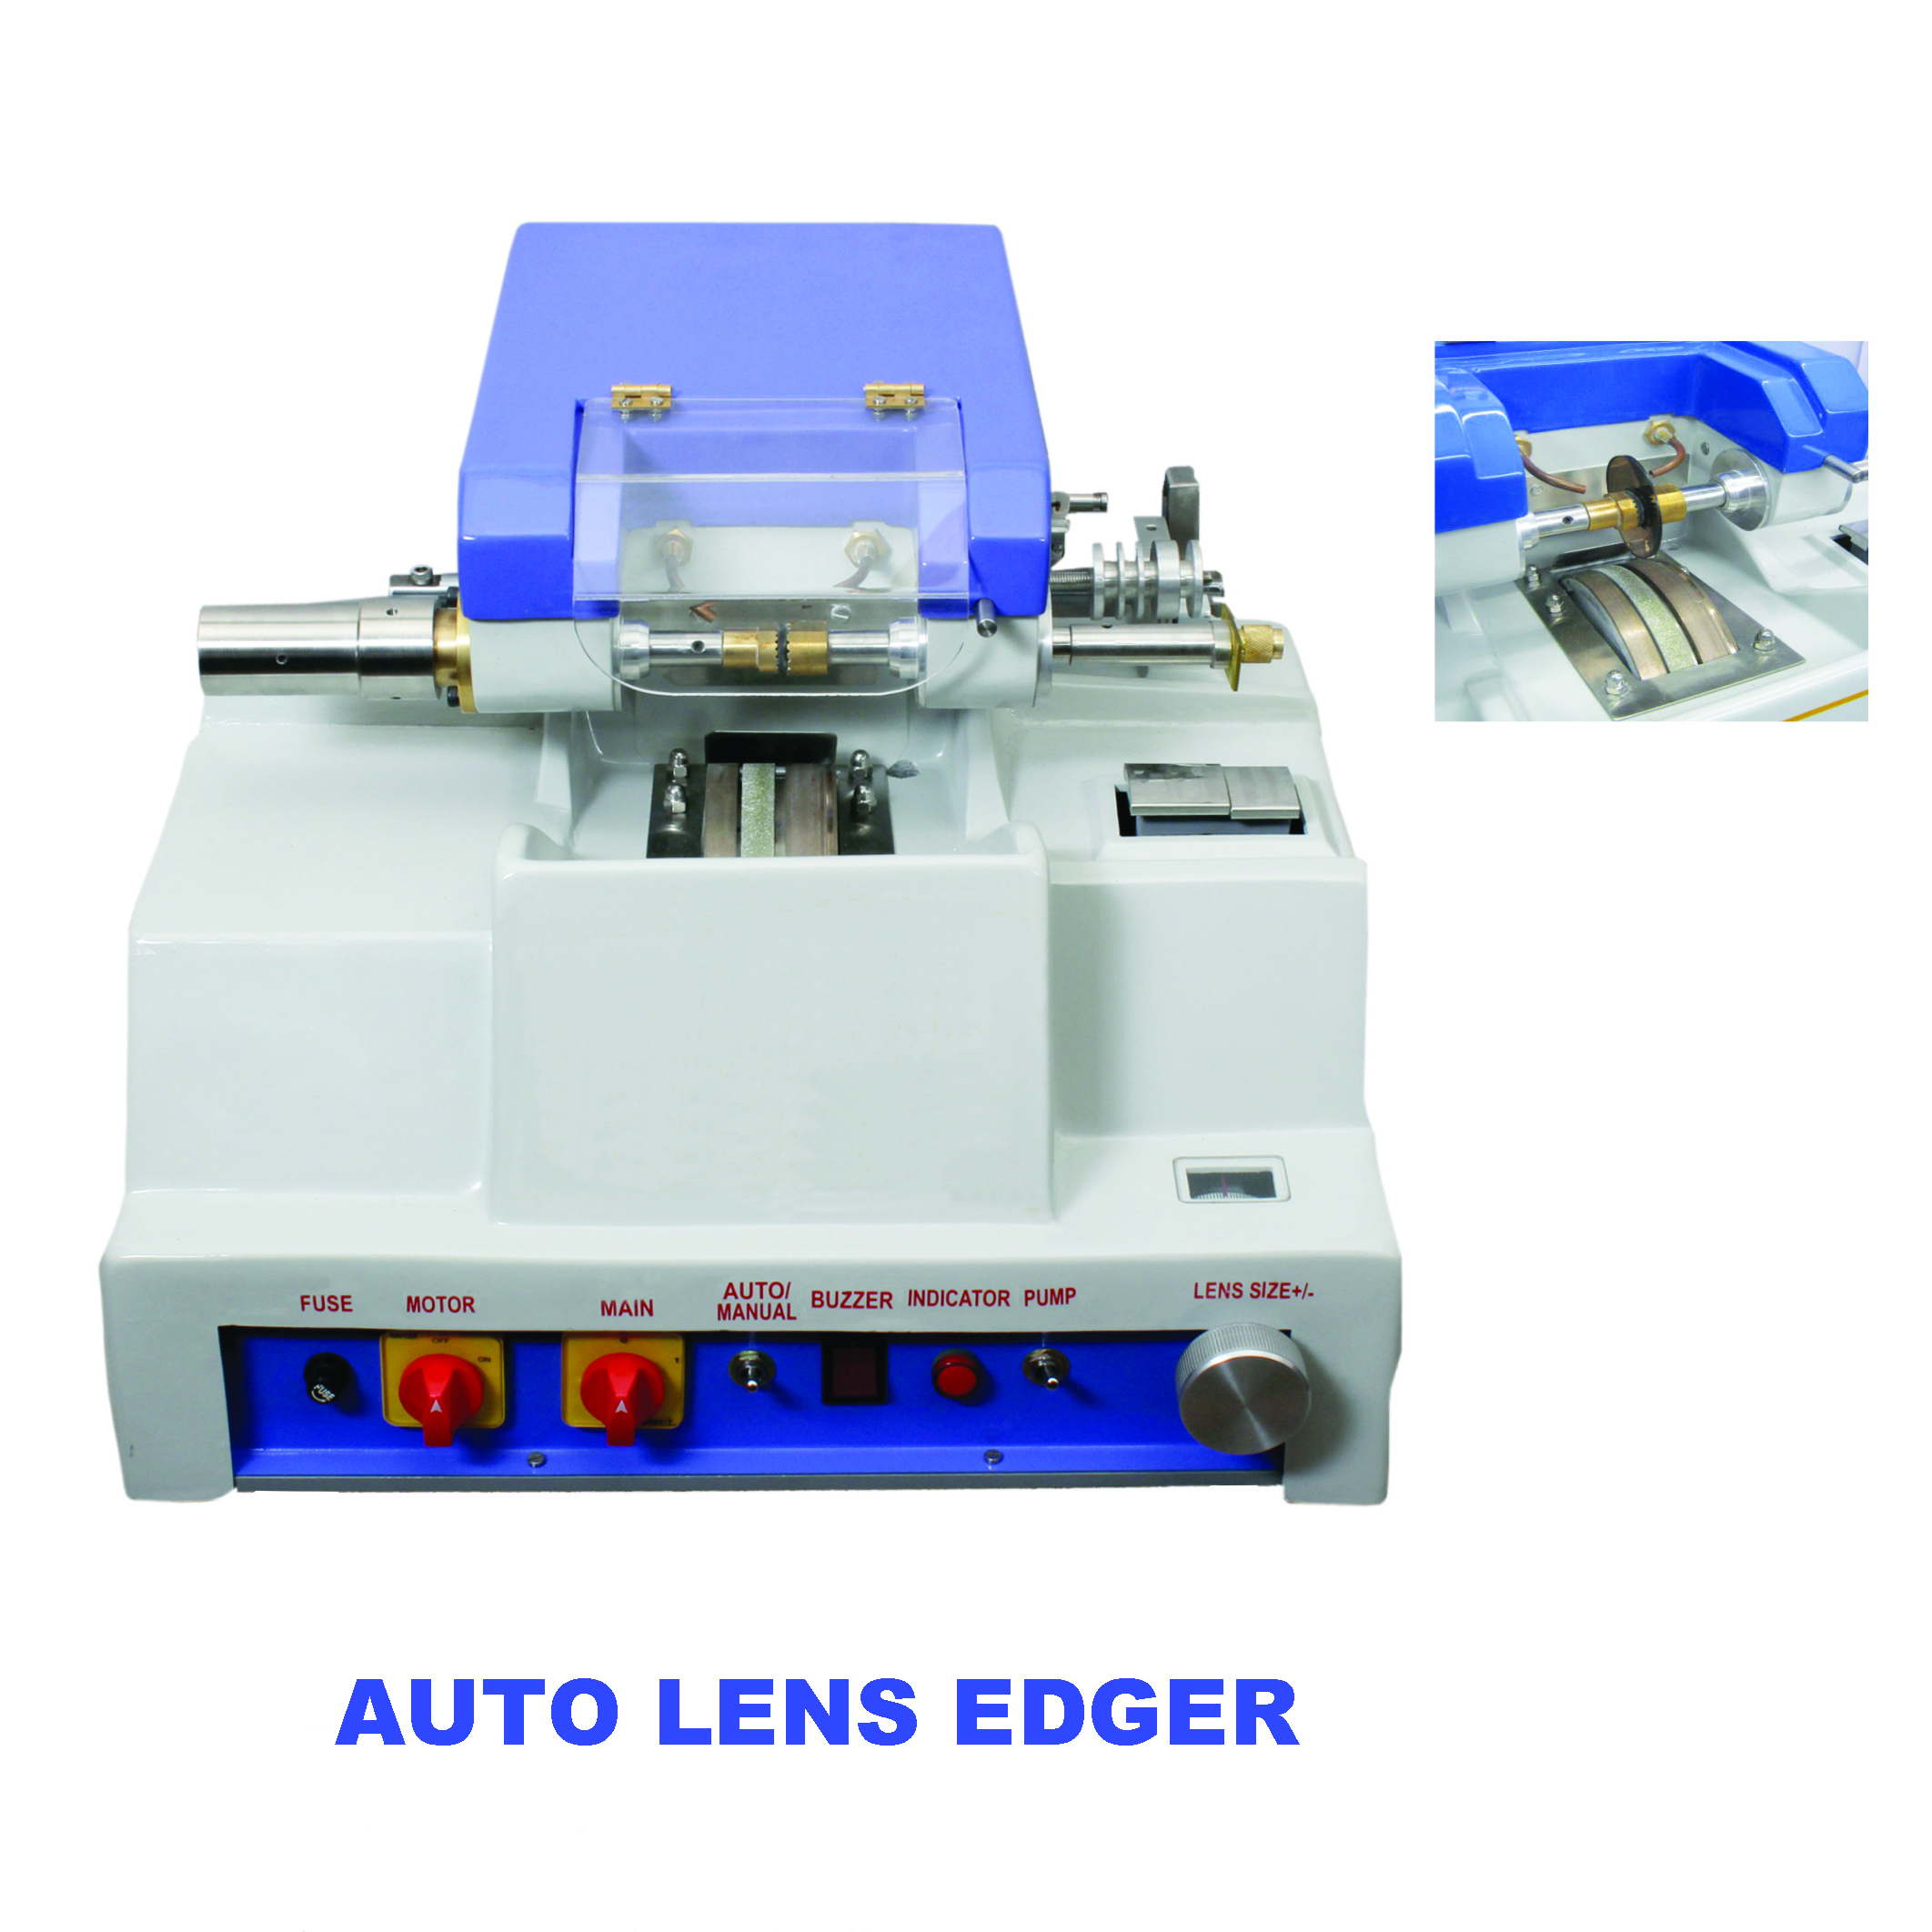 Semi-Automatic Lens Edger Machine by Deep International, INDIA